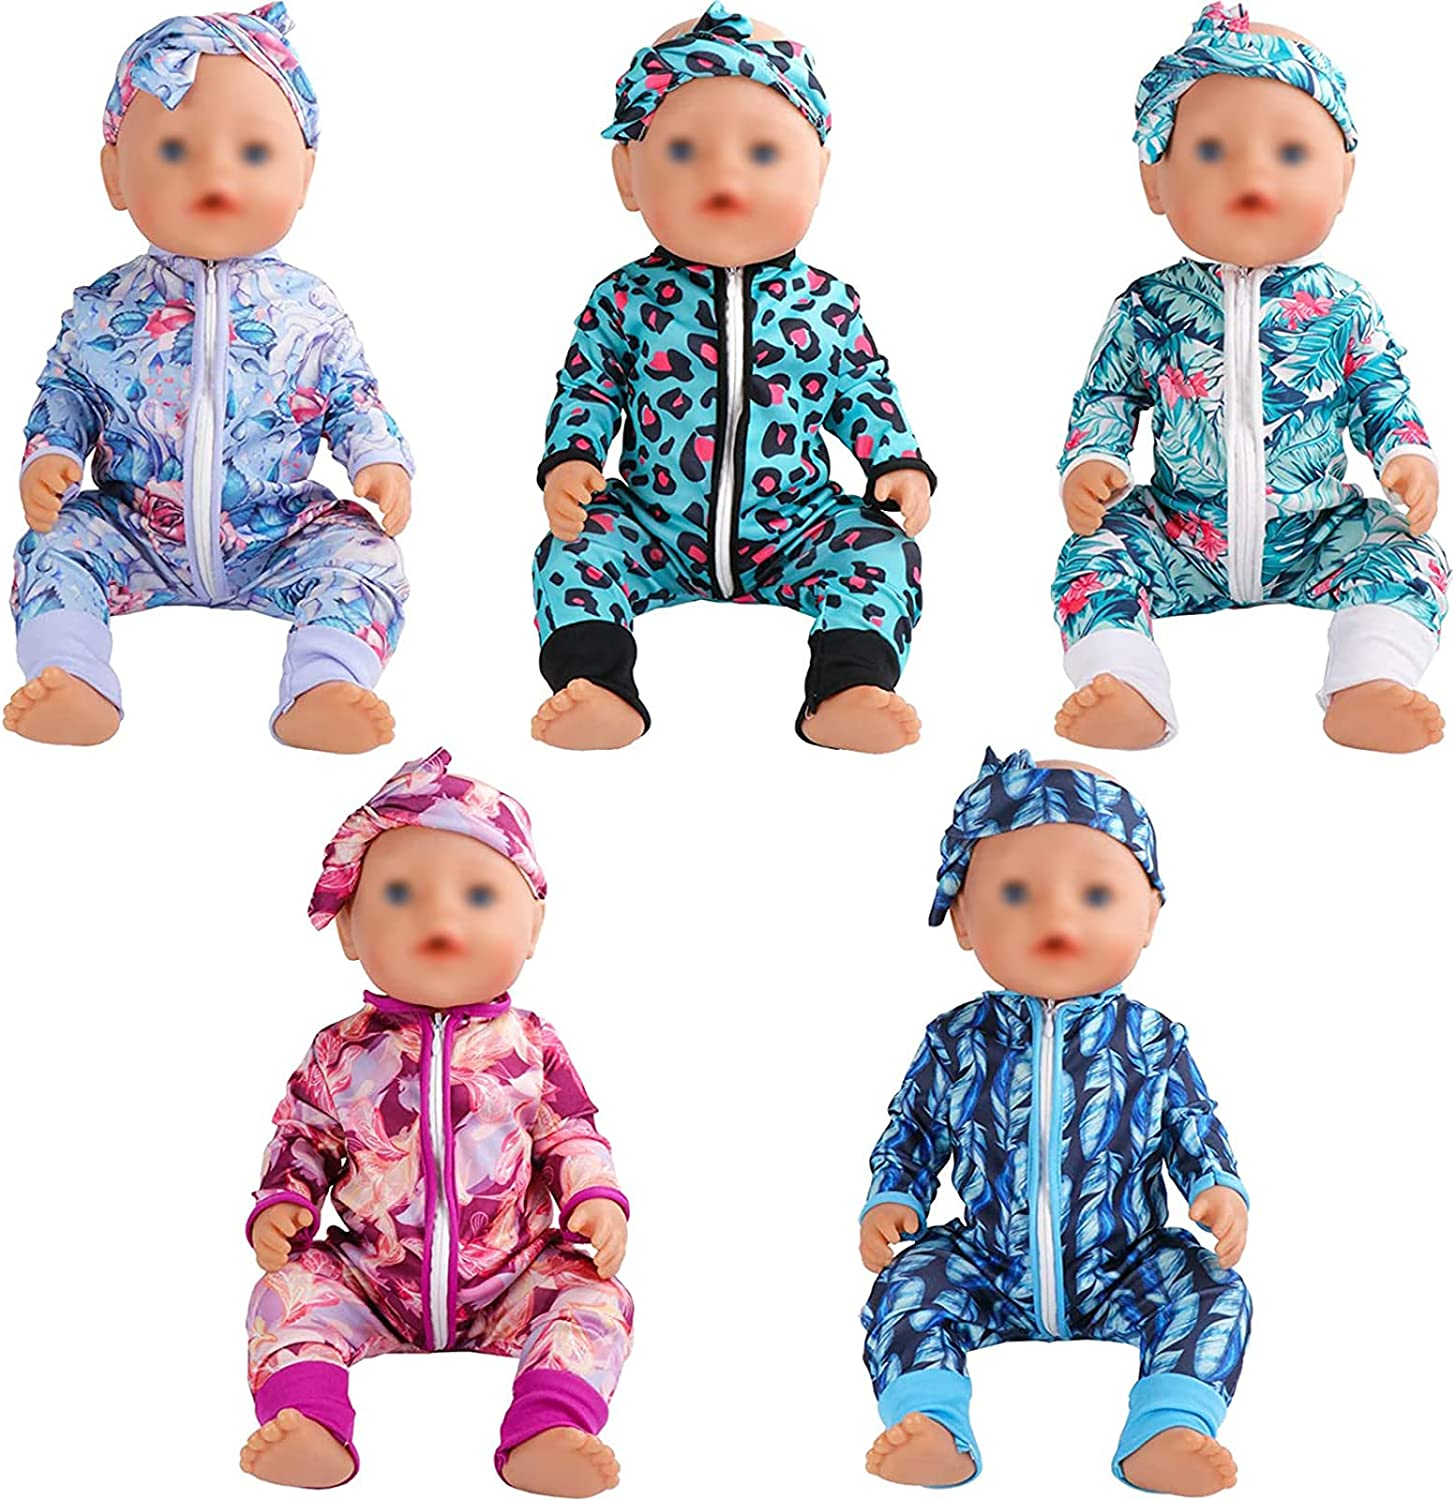 SOTOGO 5 Sets Baby Doll In a popularity Jumpsuits with Outfits Clothes Headban Limited time cheap sale